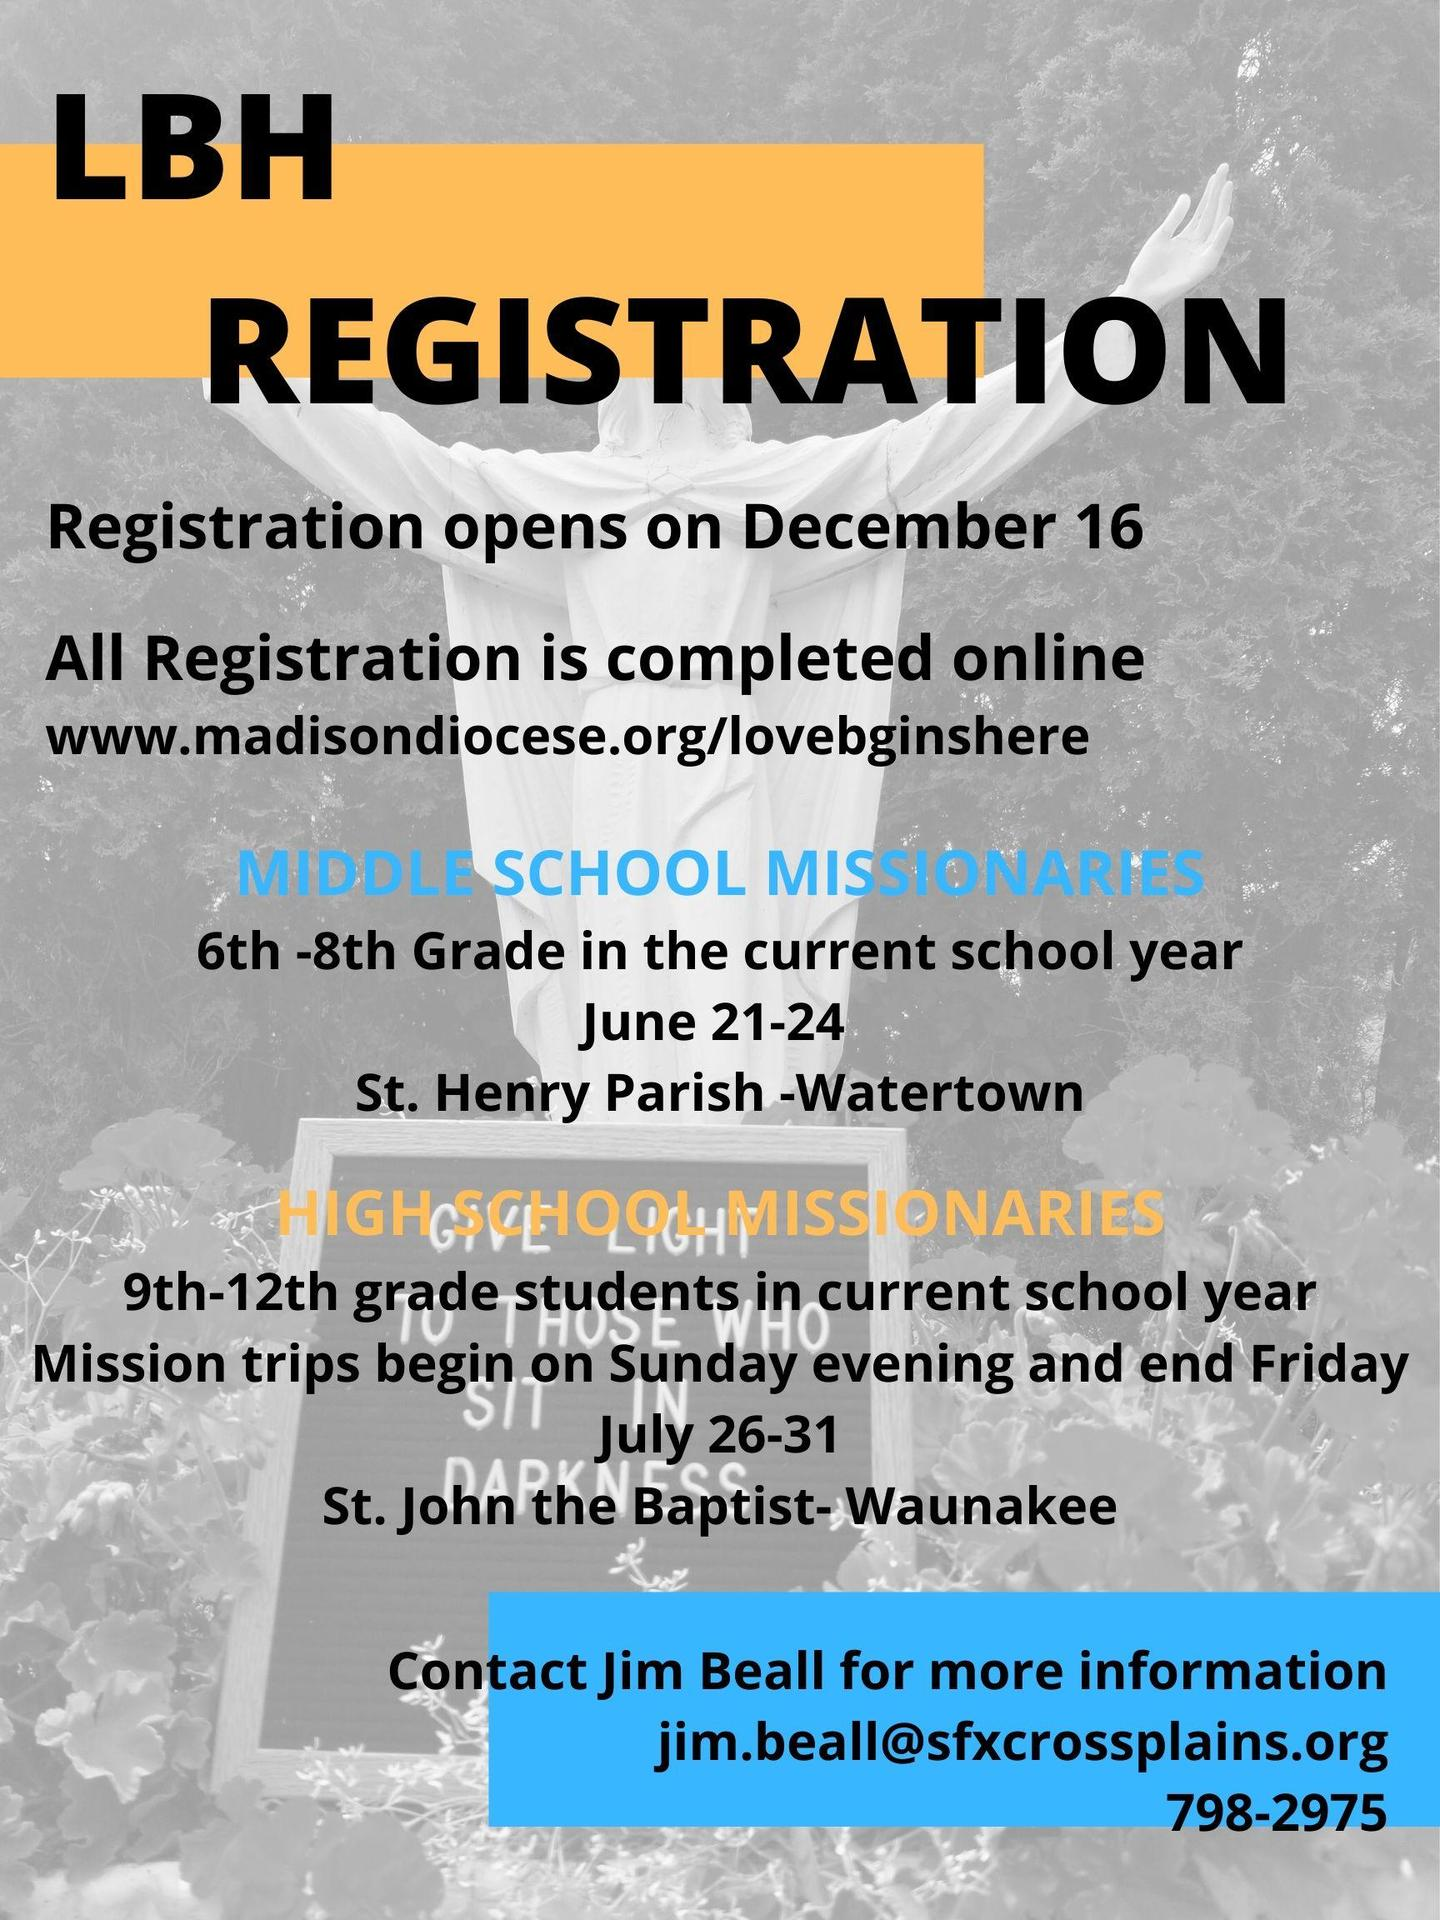 LBH Registration Info